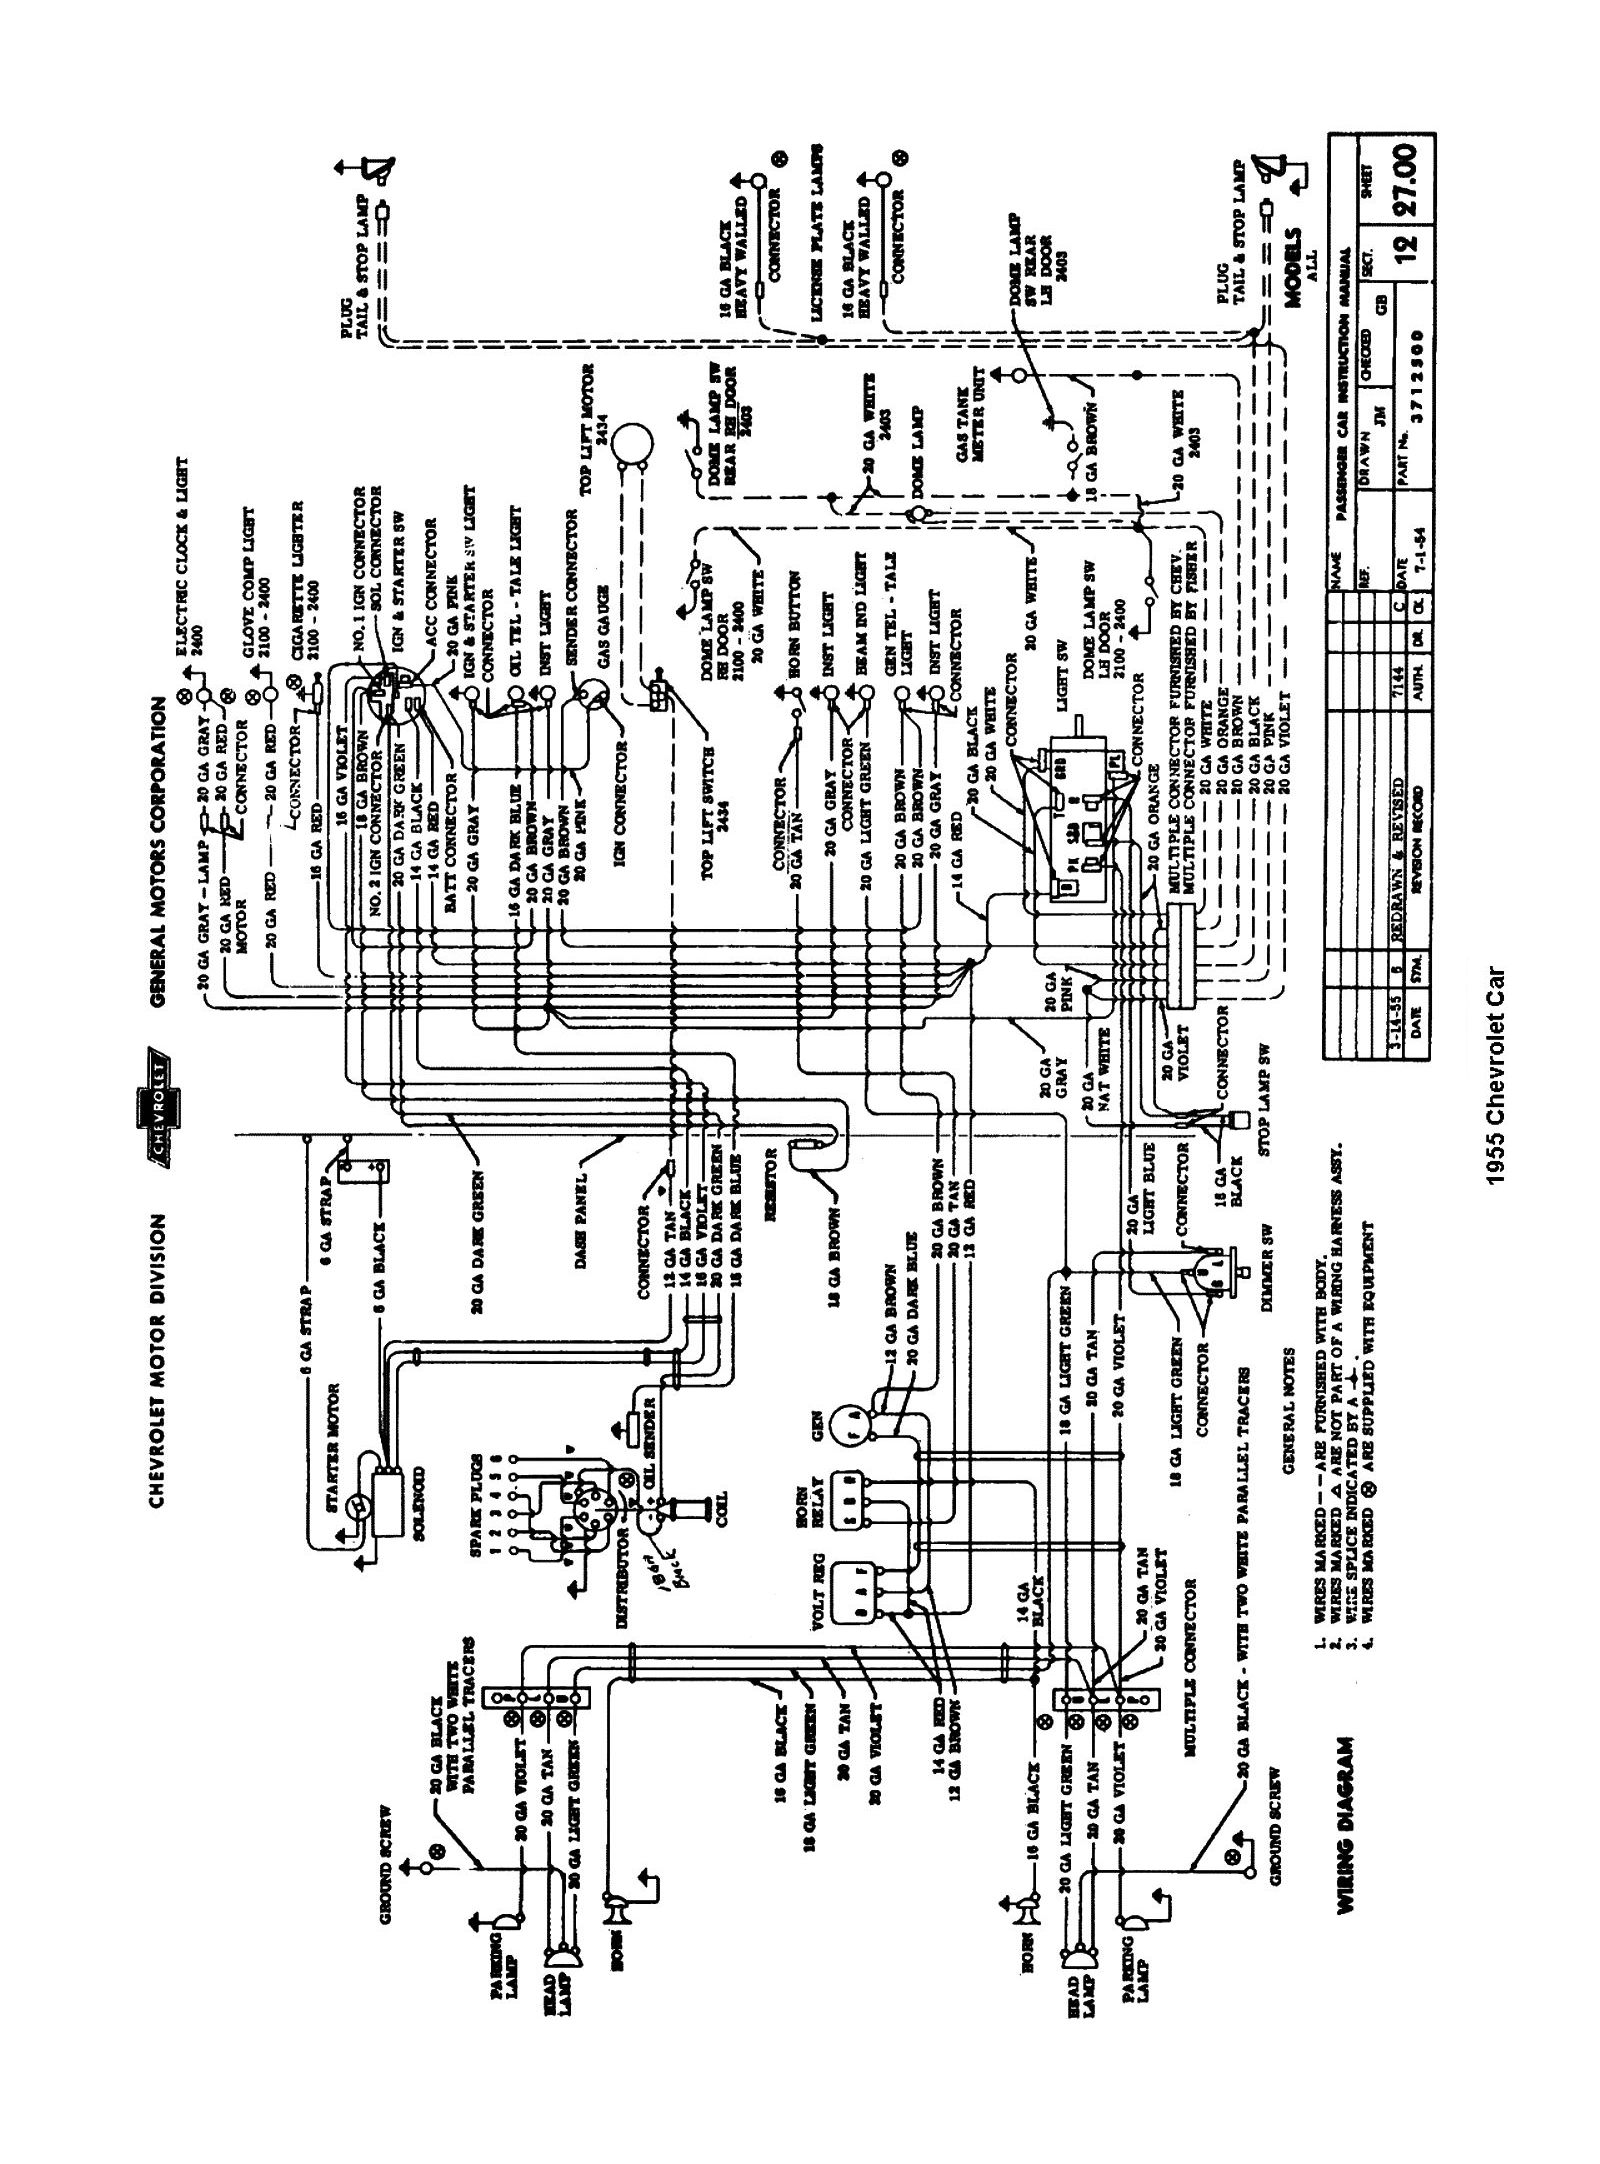 wiring diagram for 55 chevy wiring diagramchevy wiring diagrams1955, 1955 car wiring diagrams 1955 passenger car wiring